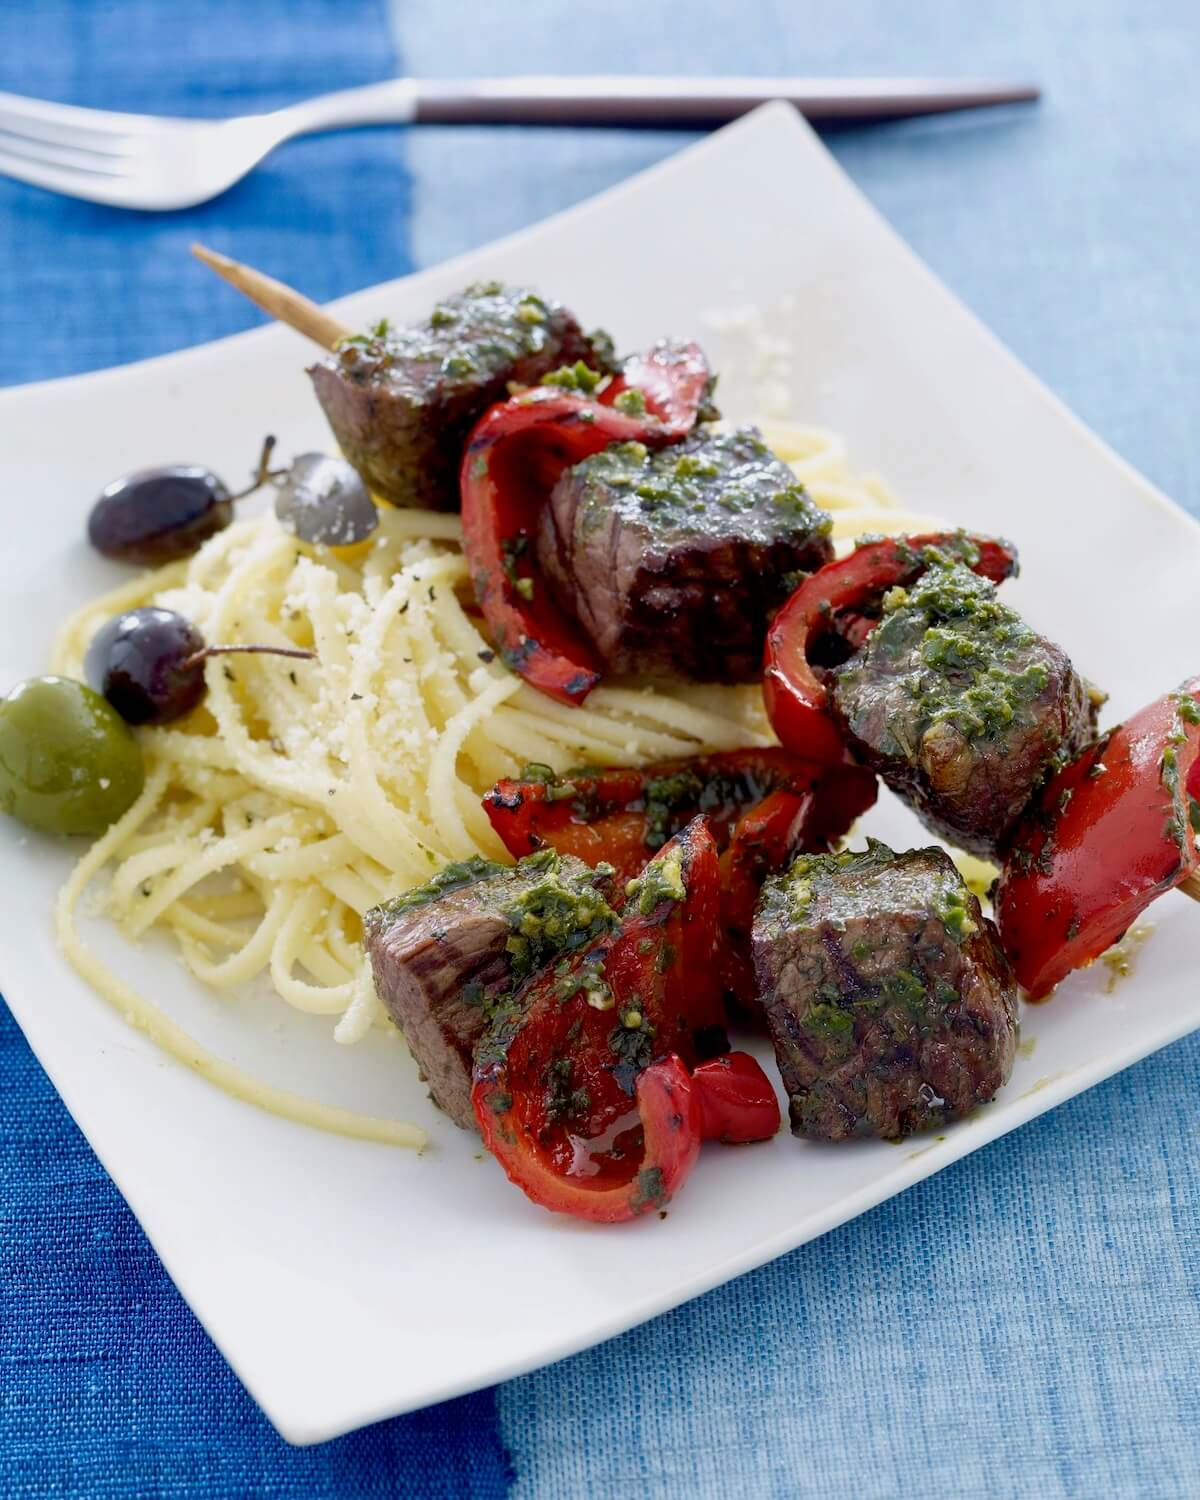 grill steak kabobs with pesto on white plate with pasta